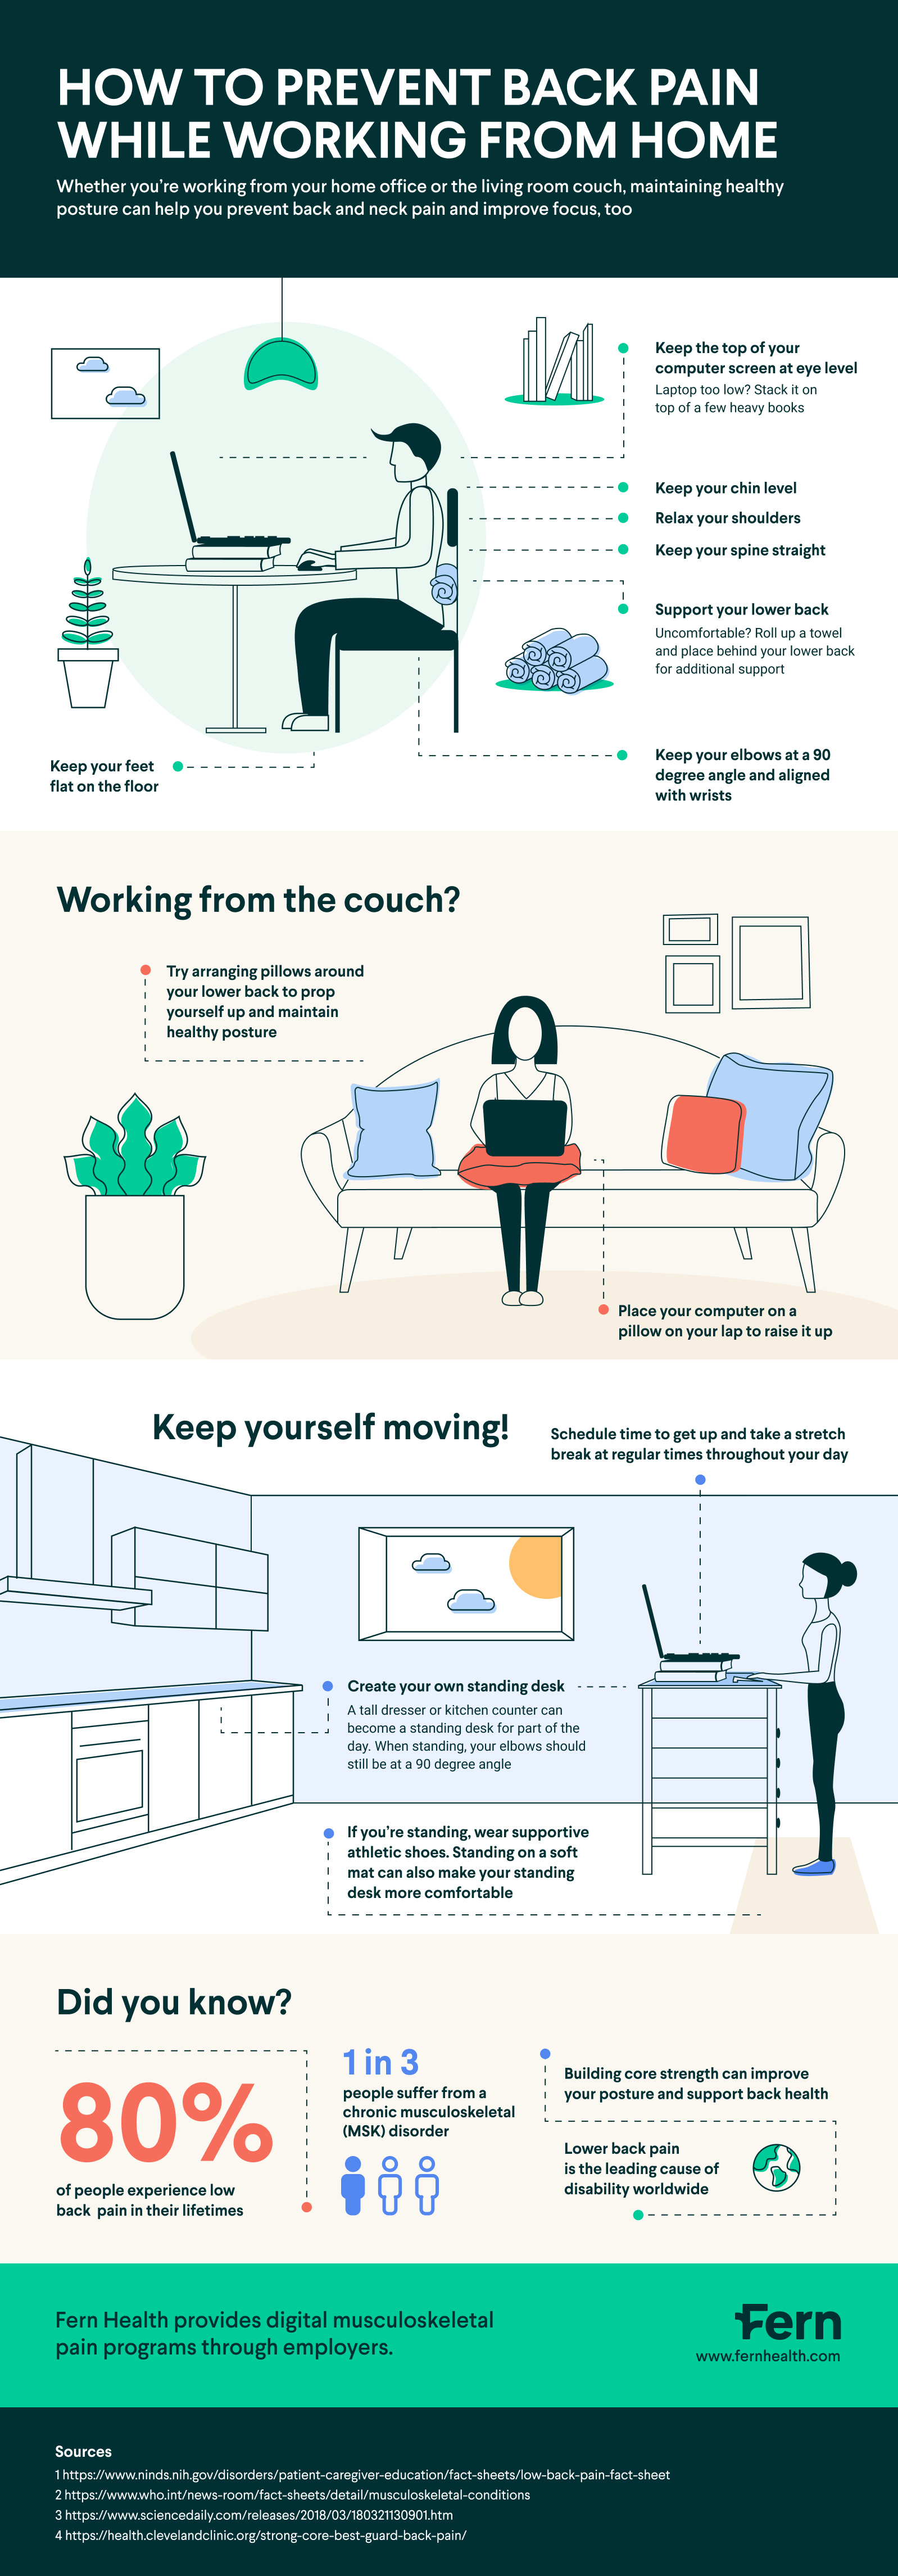 Is Your Back Bearing The Brunt Of Working From Home? - Infographic